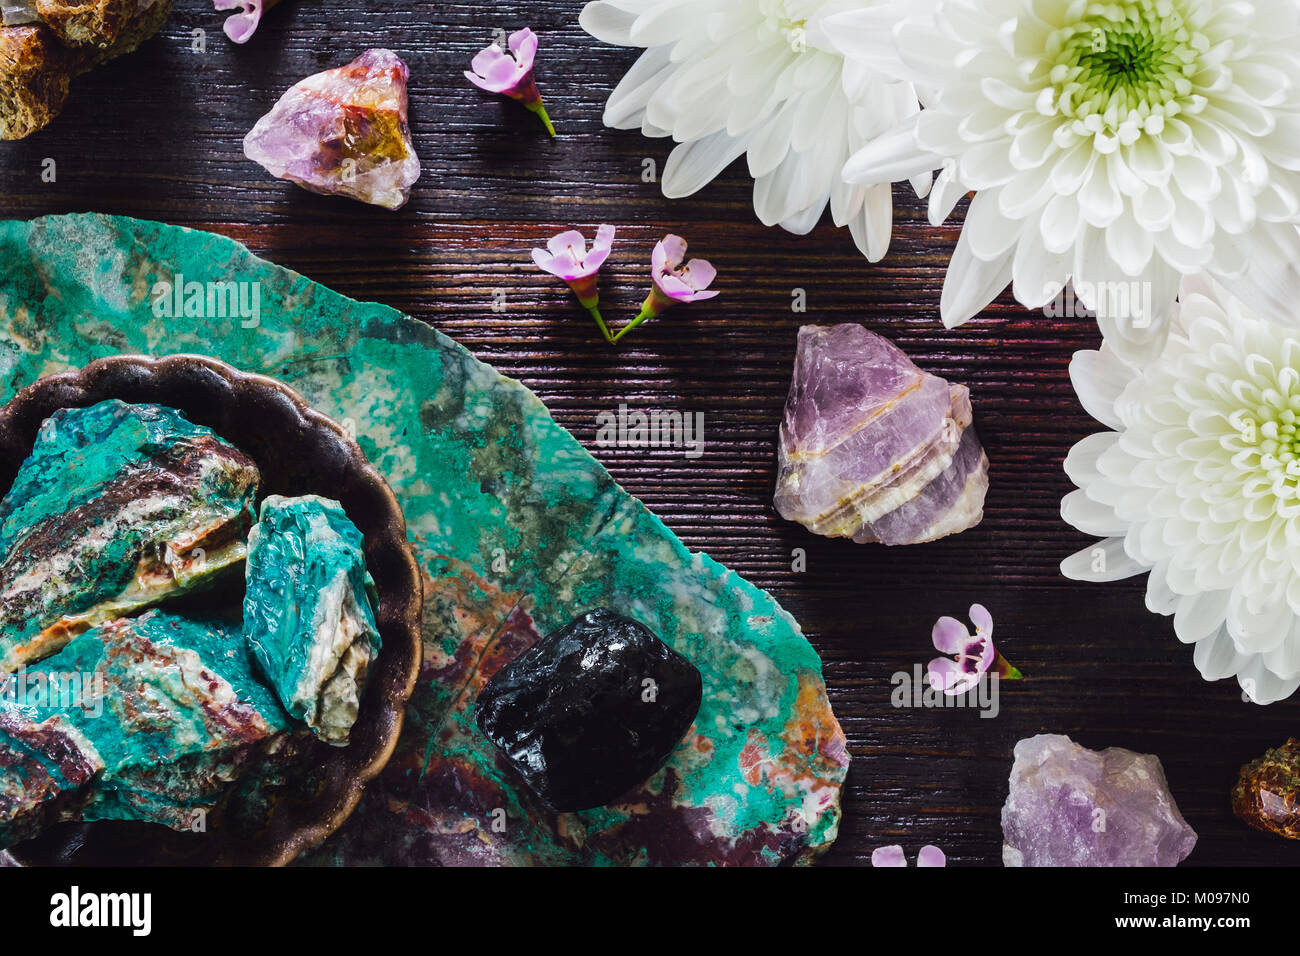 Rough Amethyst, Turquoise, Garnet in Matrix and Onyx with Mixed Flowers on Dark Table - Stock Image